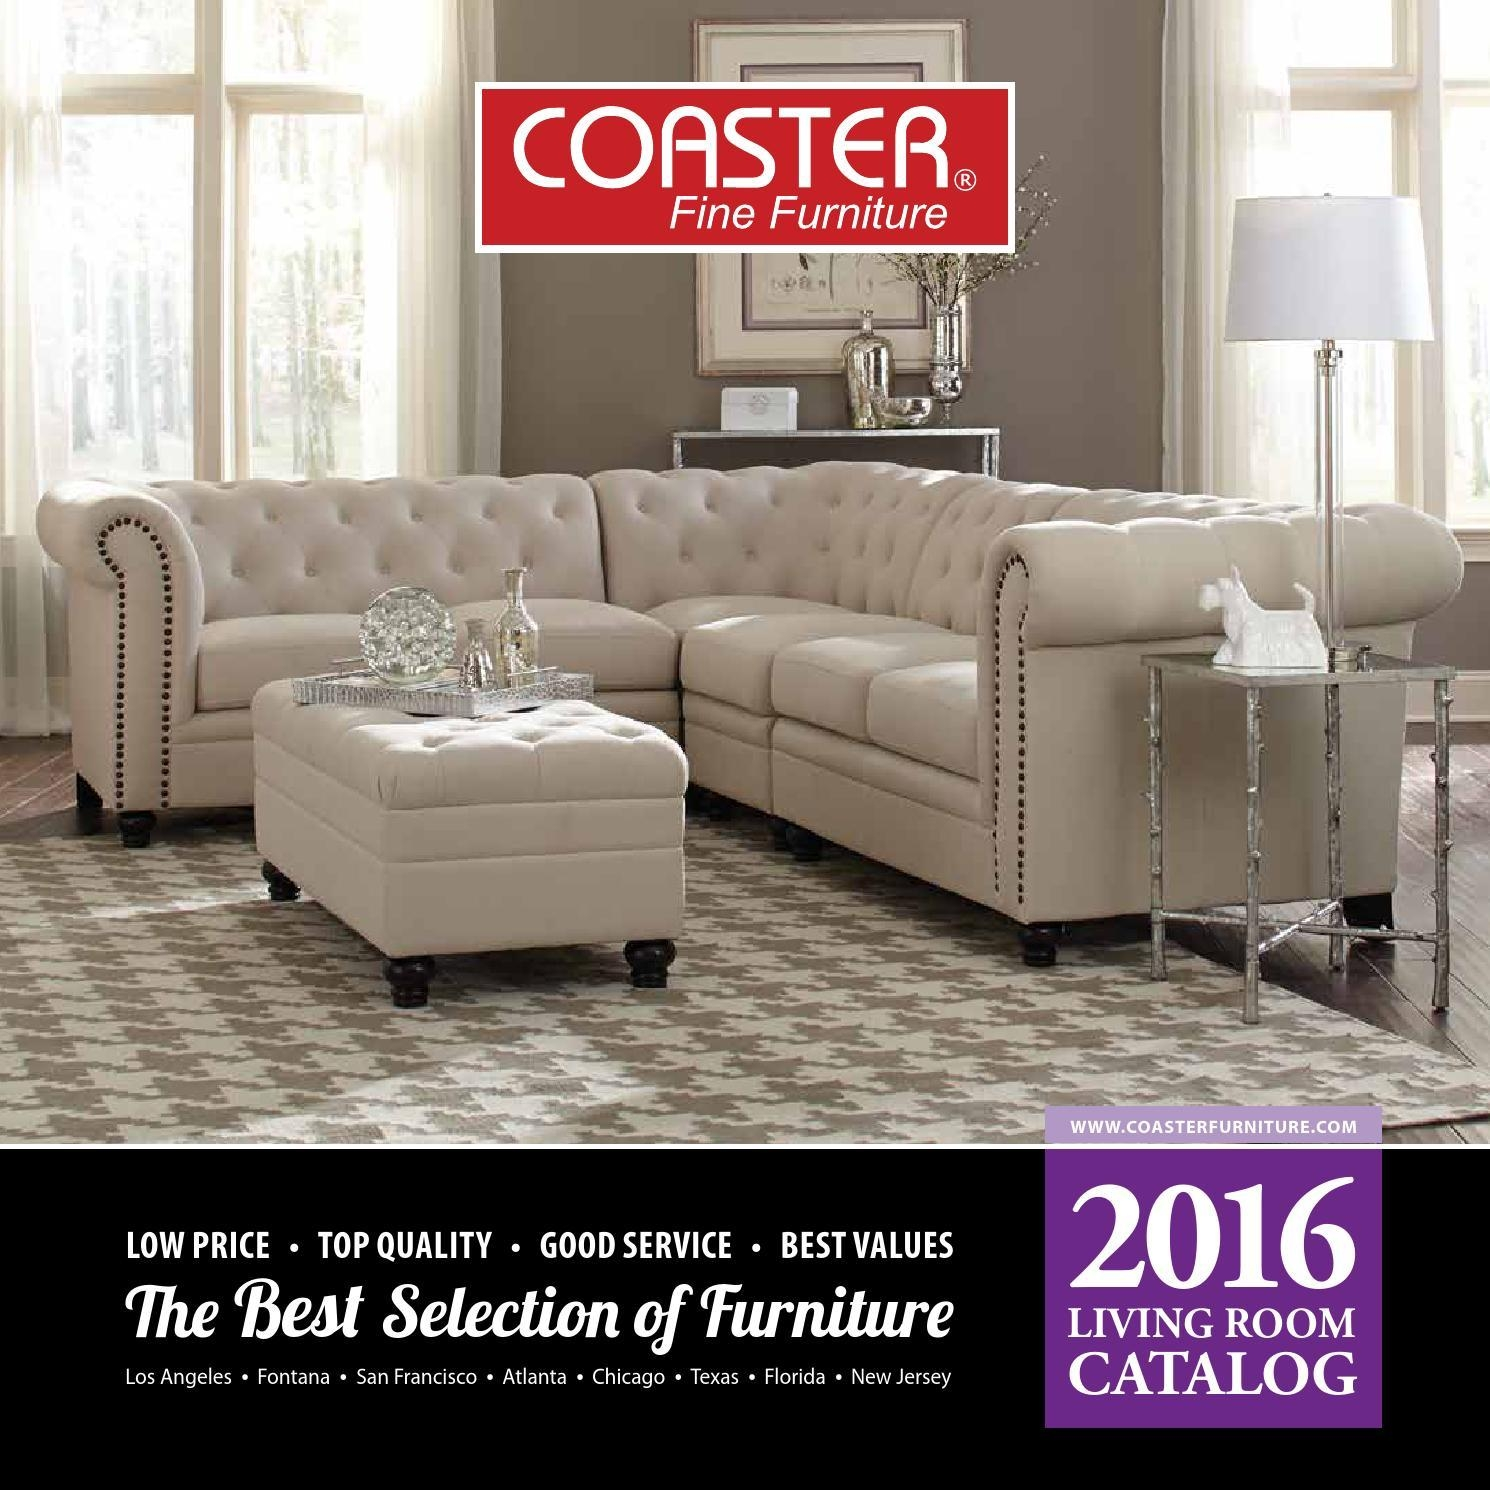 2016 Living Room Catalogcoaster Company Of America - Issuu inside Coasters Sofas